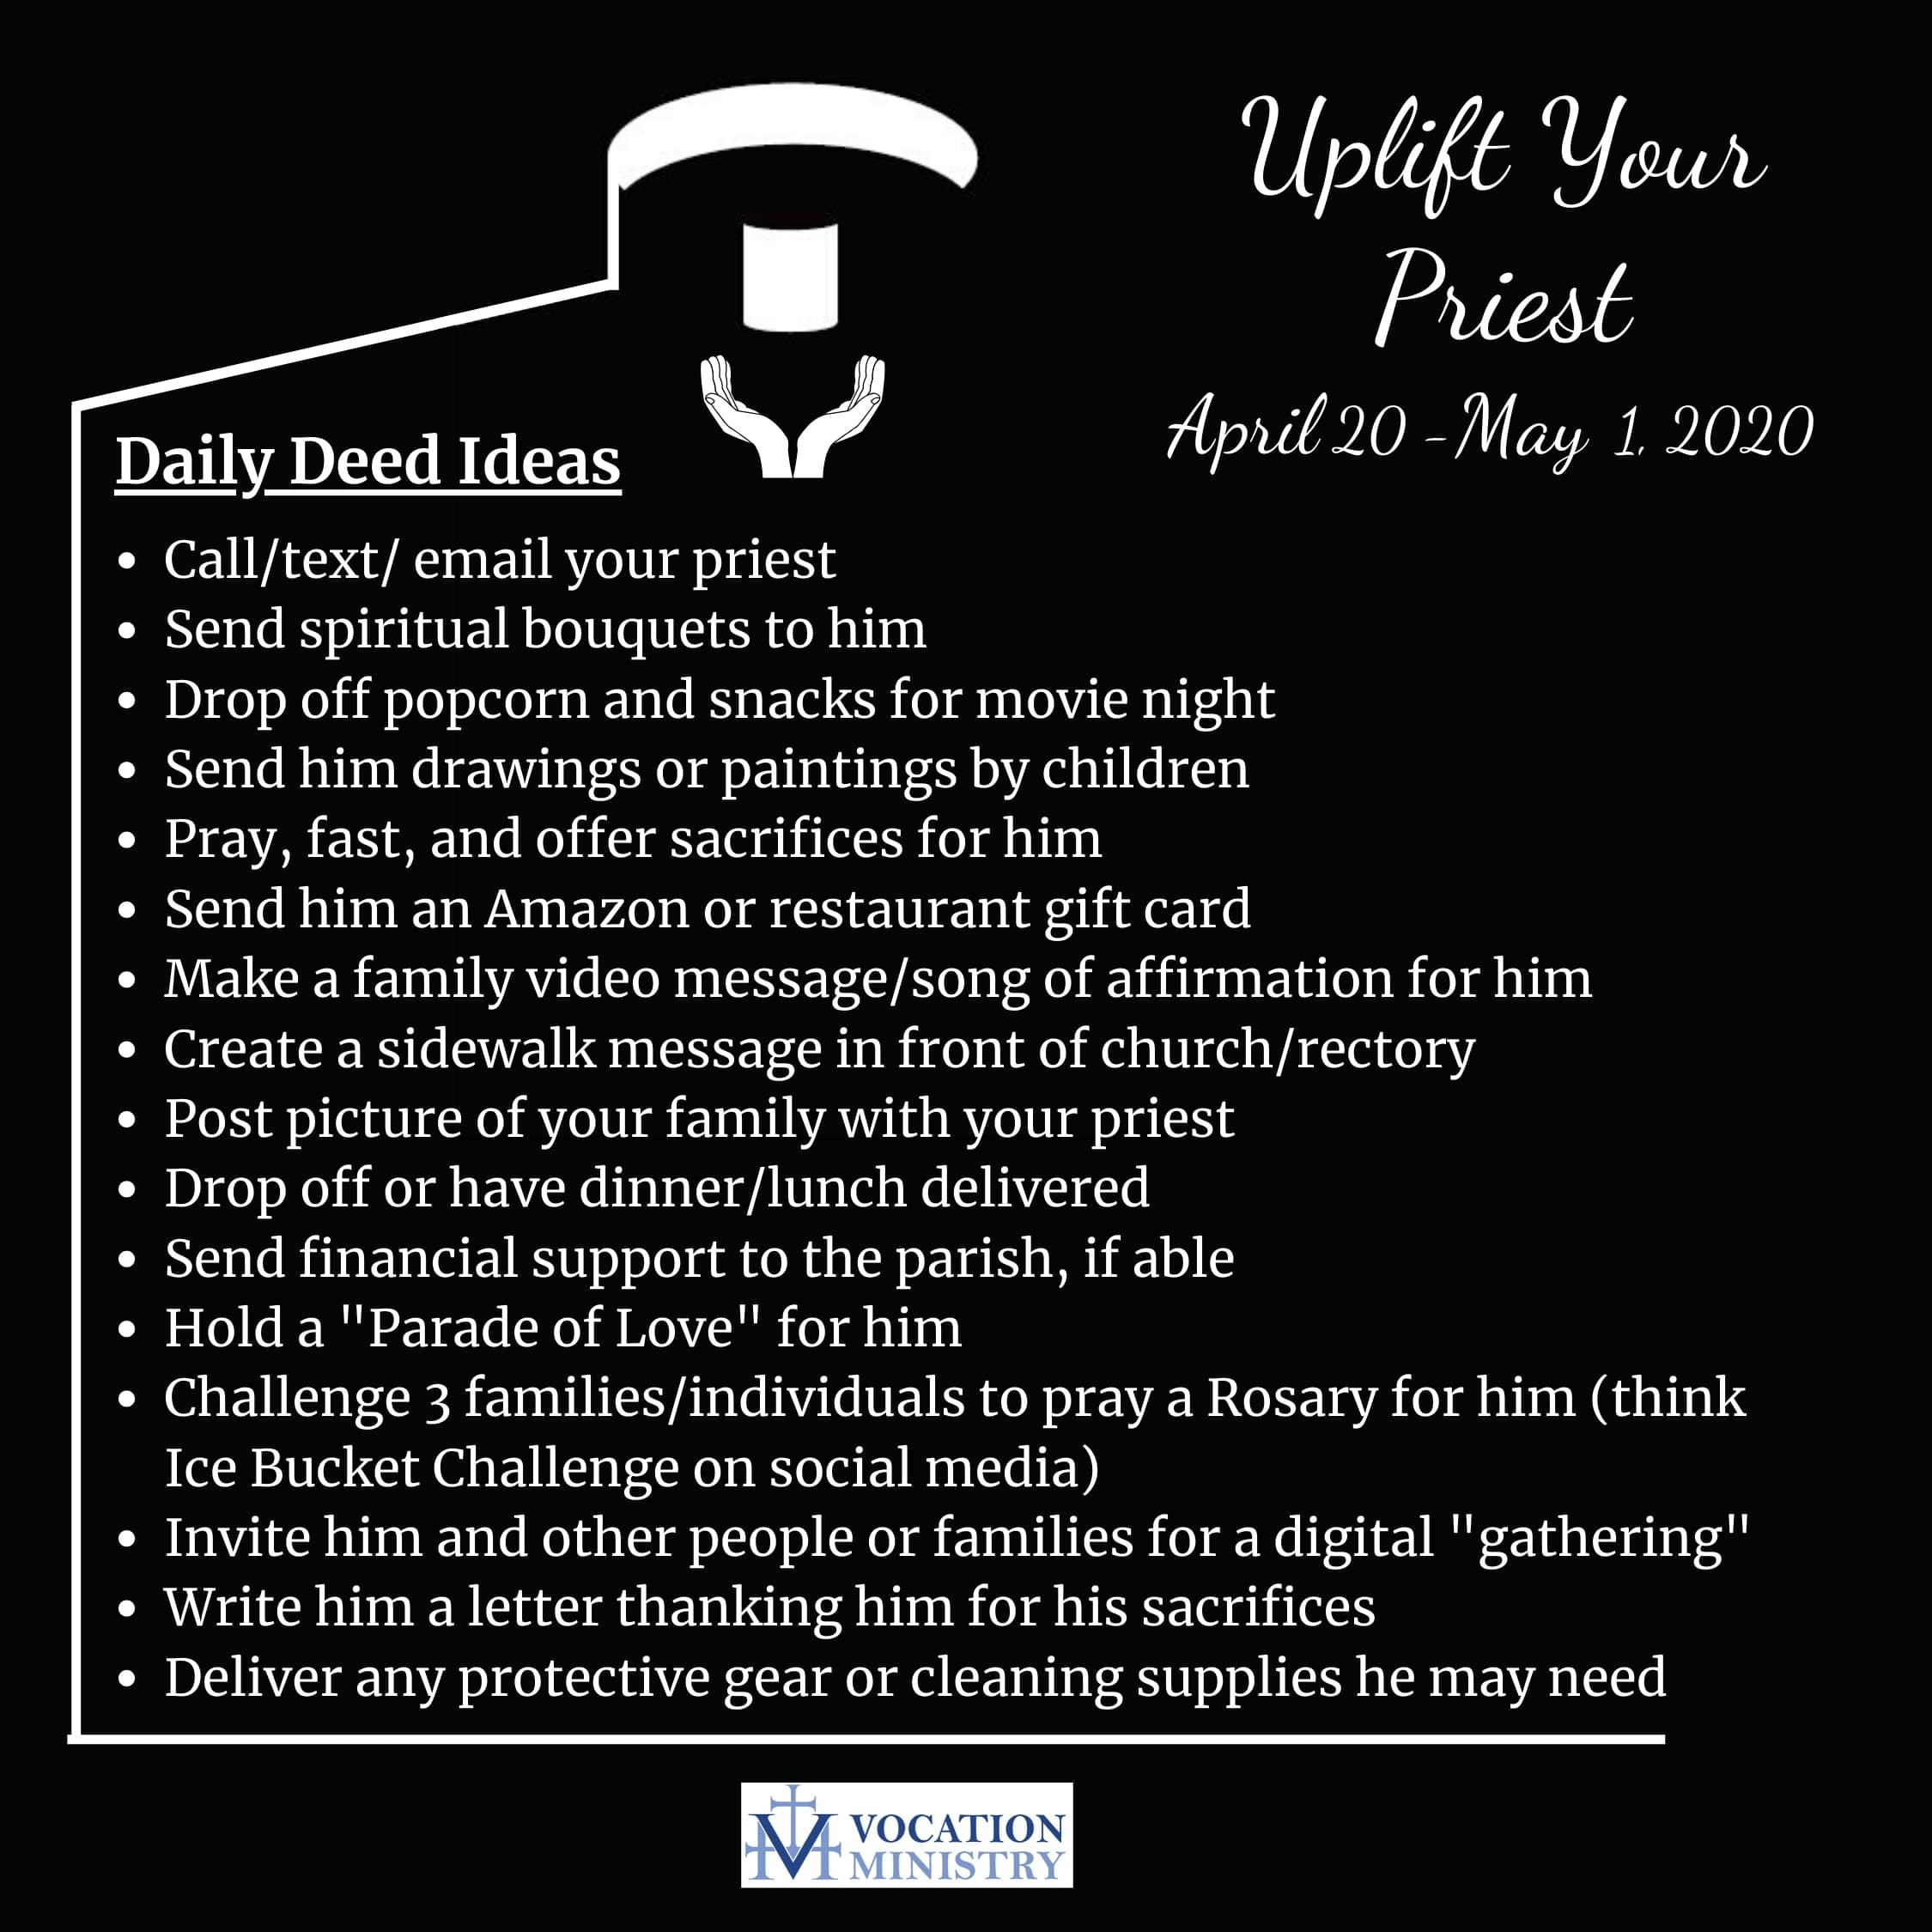 Daily Deed Ideas